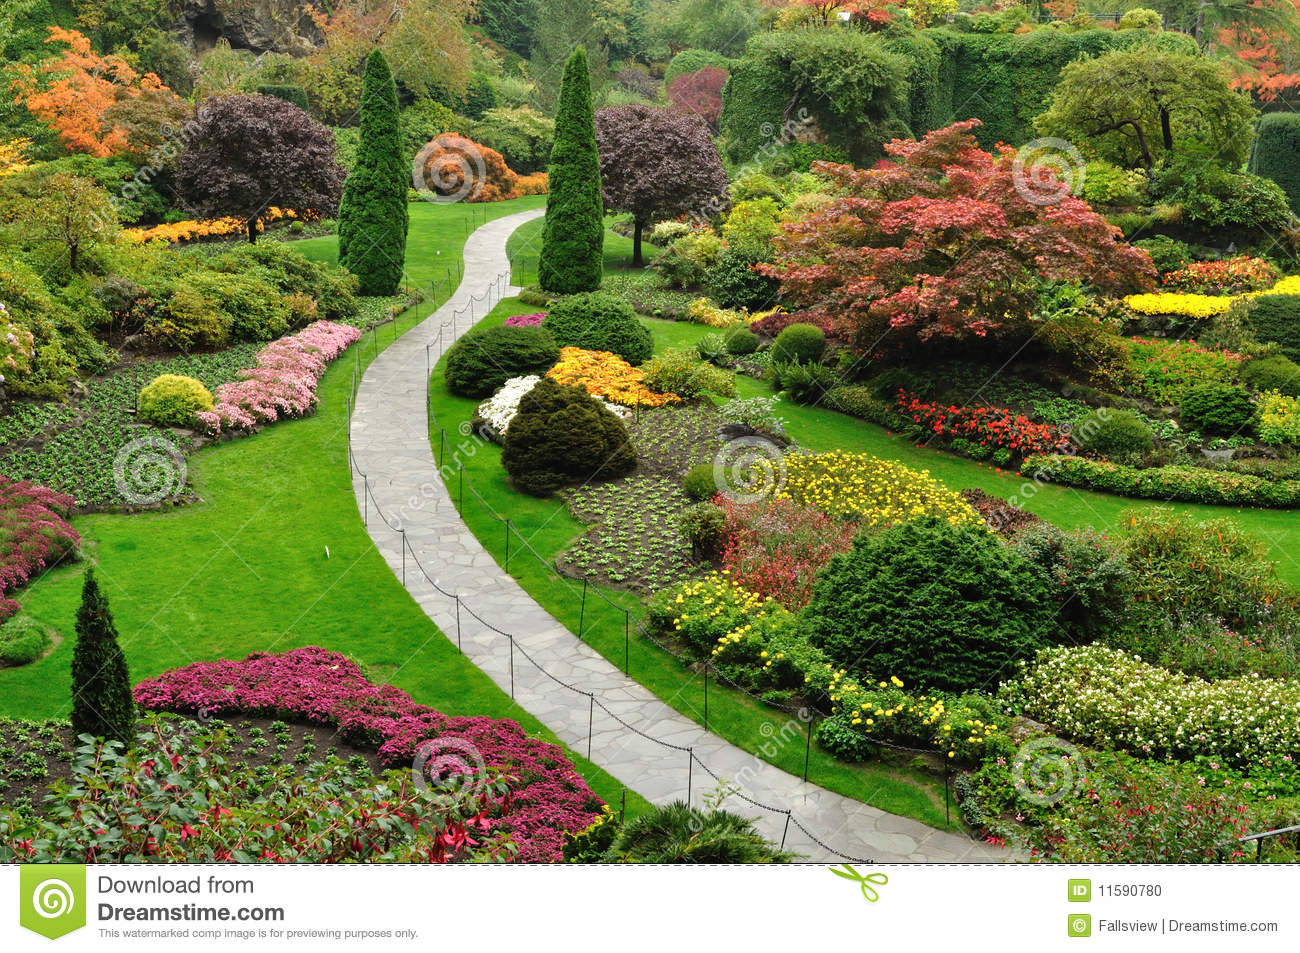 Am nagement de jardins photo stock image 11590780 for Amenagement du jardin photo